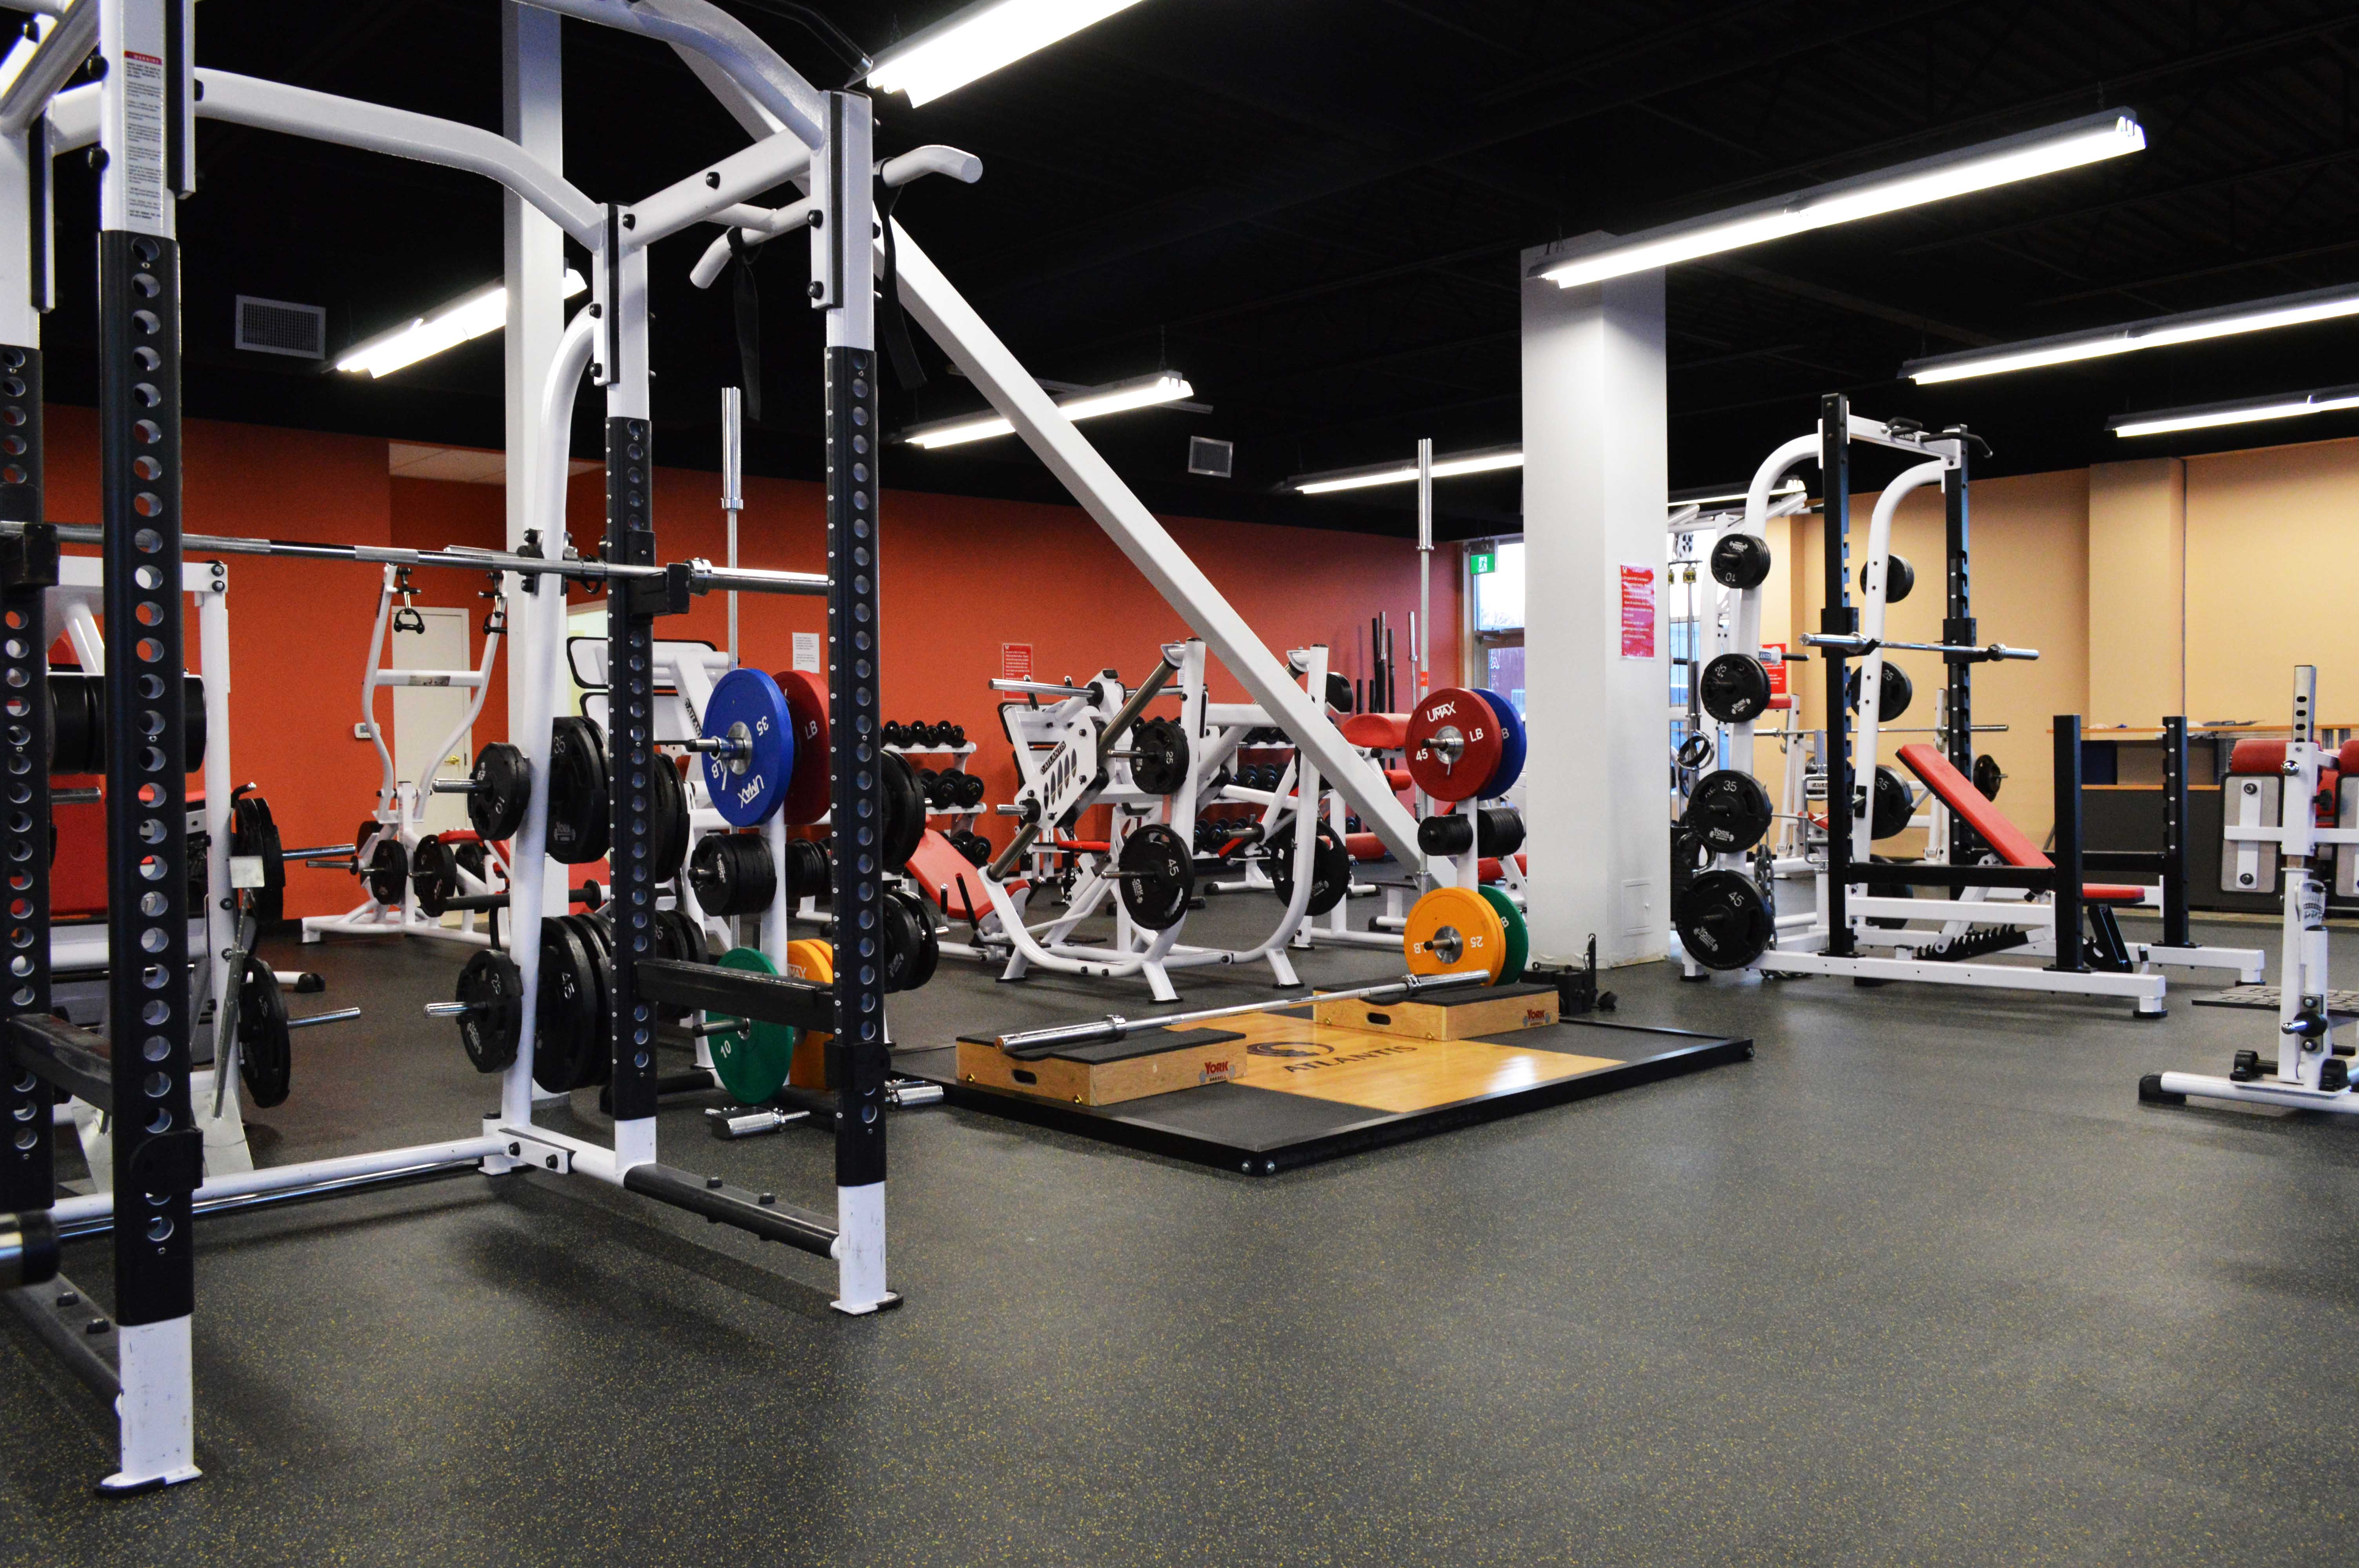 NLC-Fitness-Centre-Guelph-Facility-9 Facility